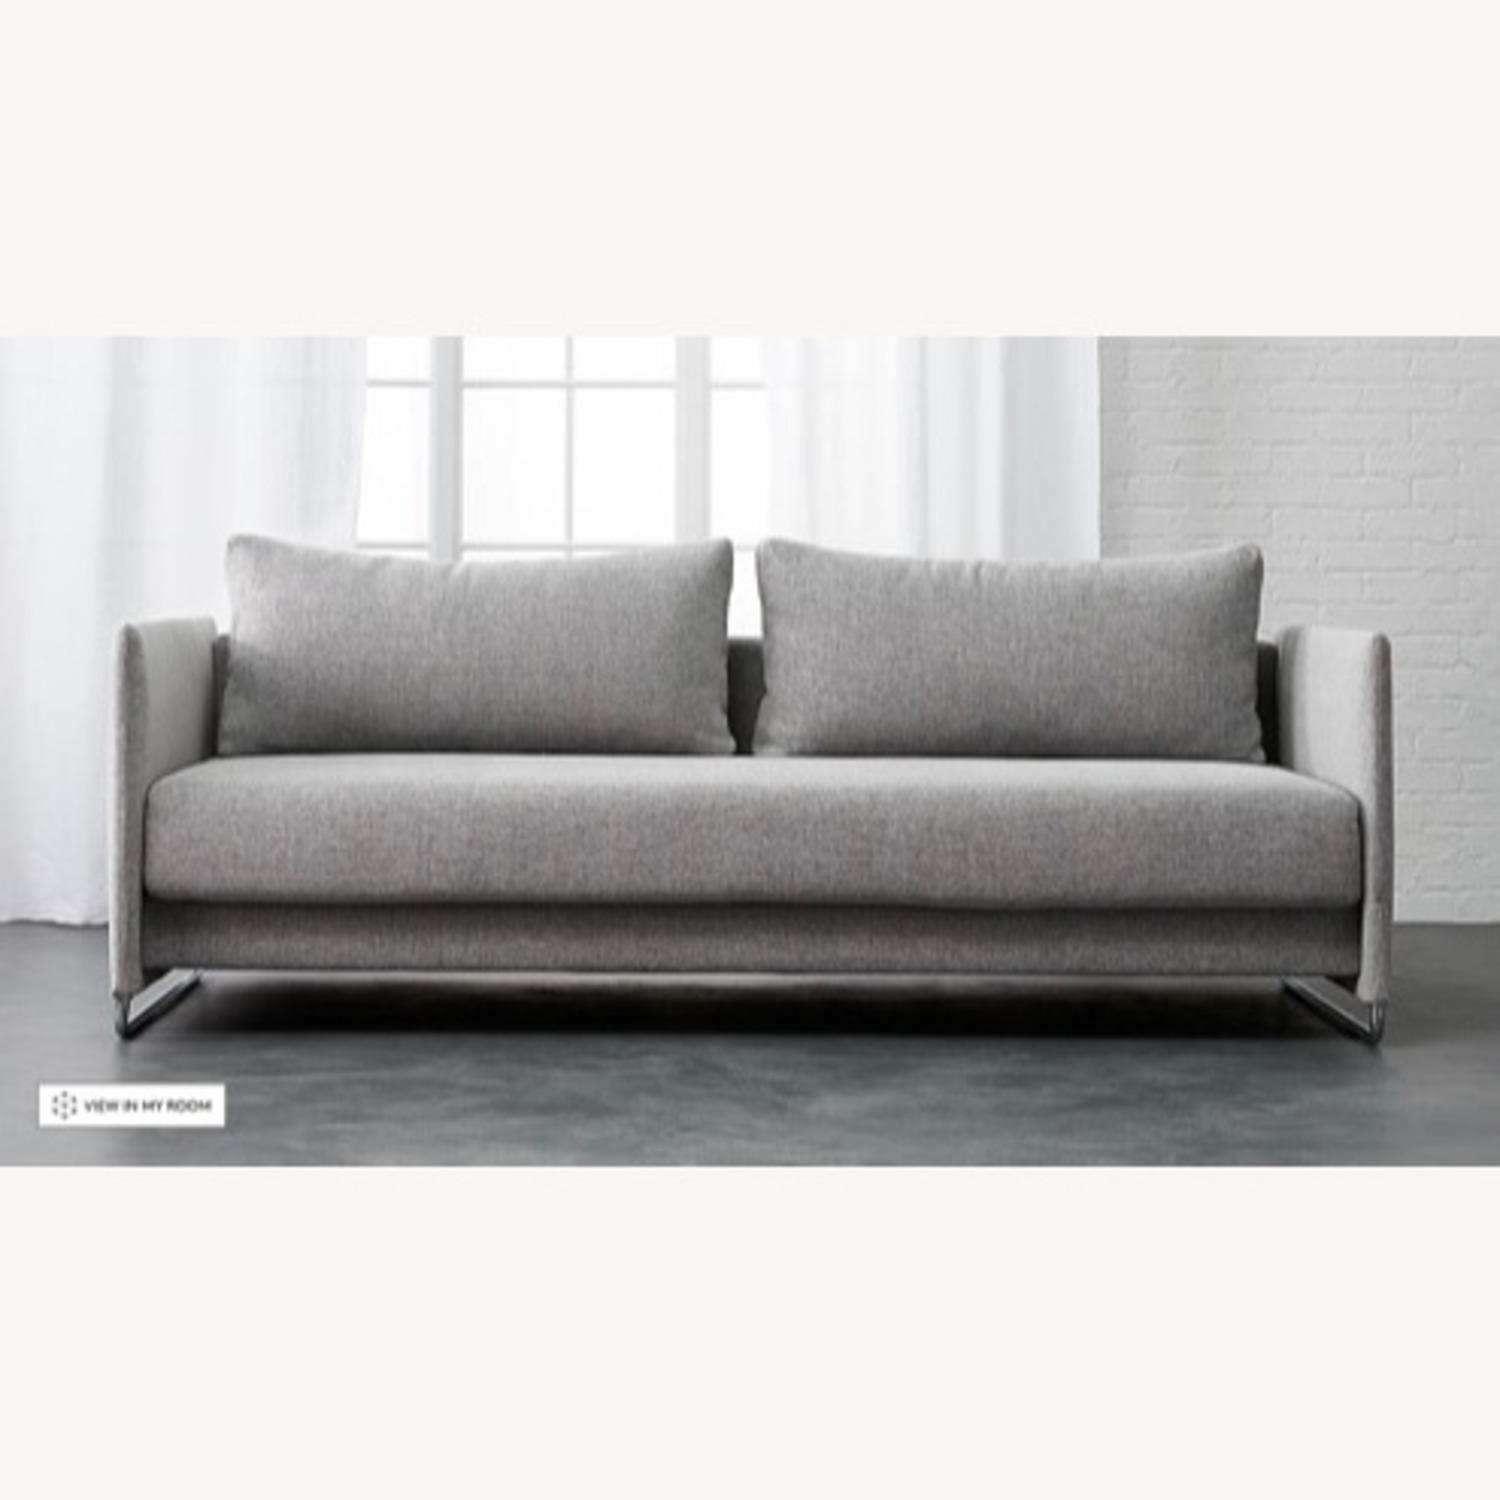 CB2 Couch - image-3